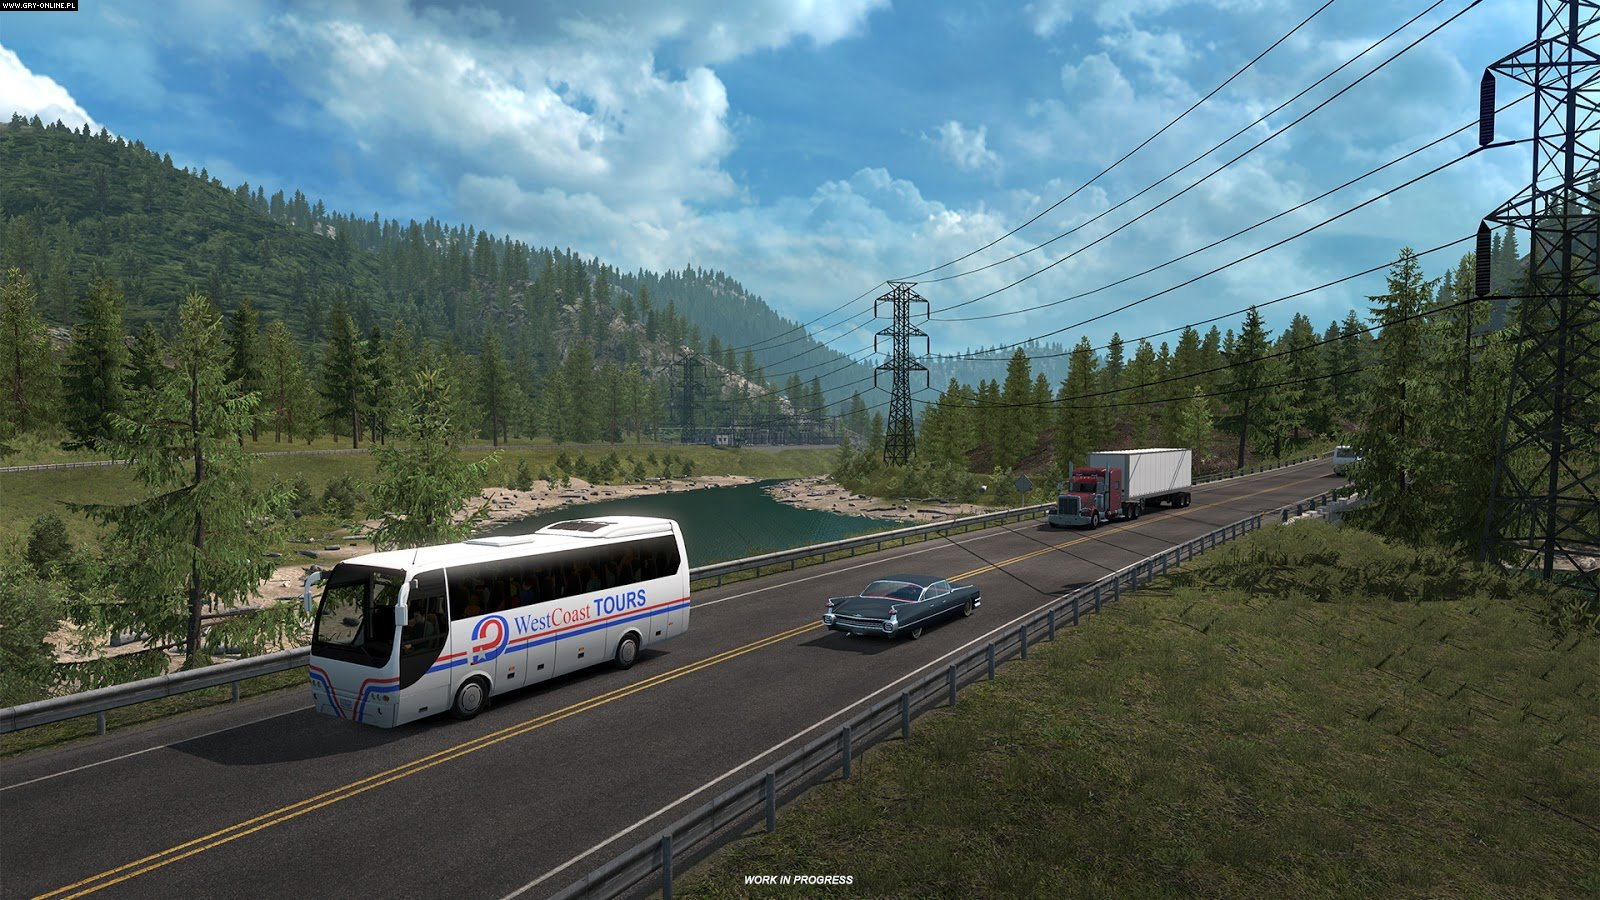 American Truck Simulator: Washington PC Games Image 2/8, SCS Software